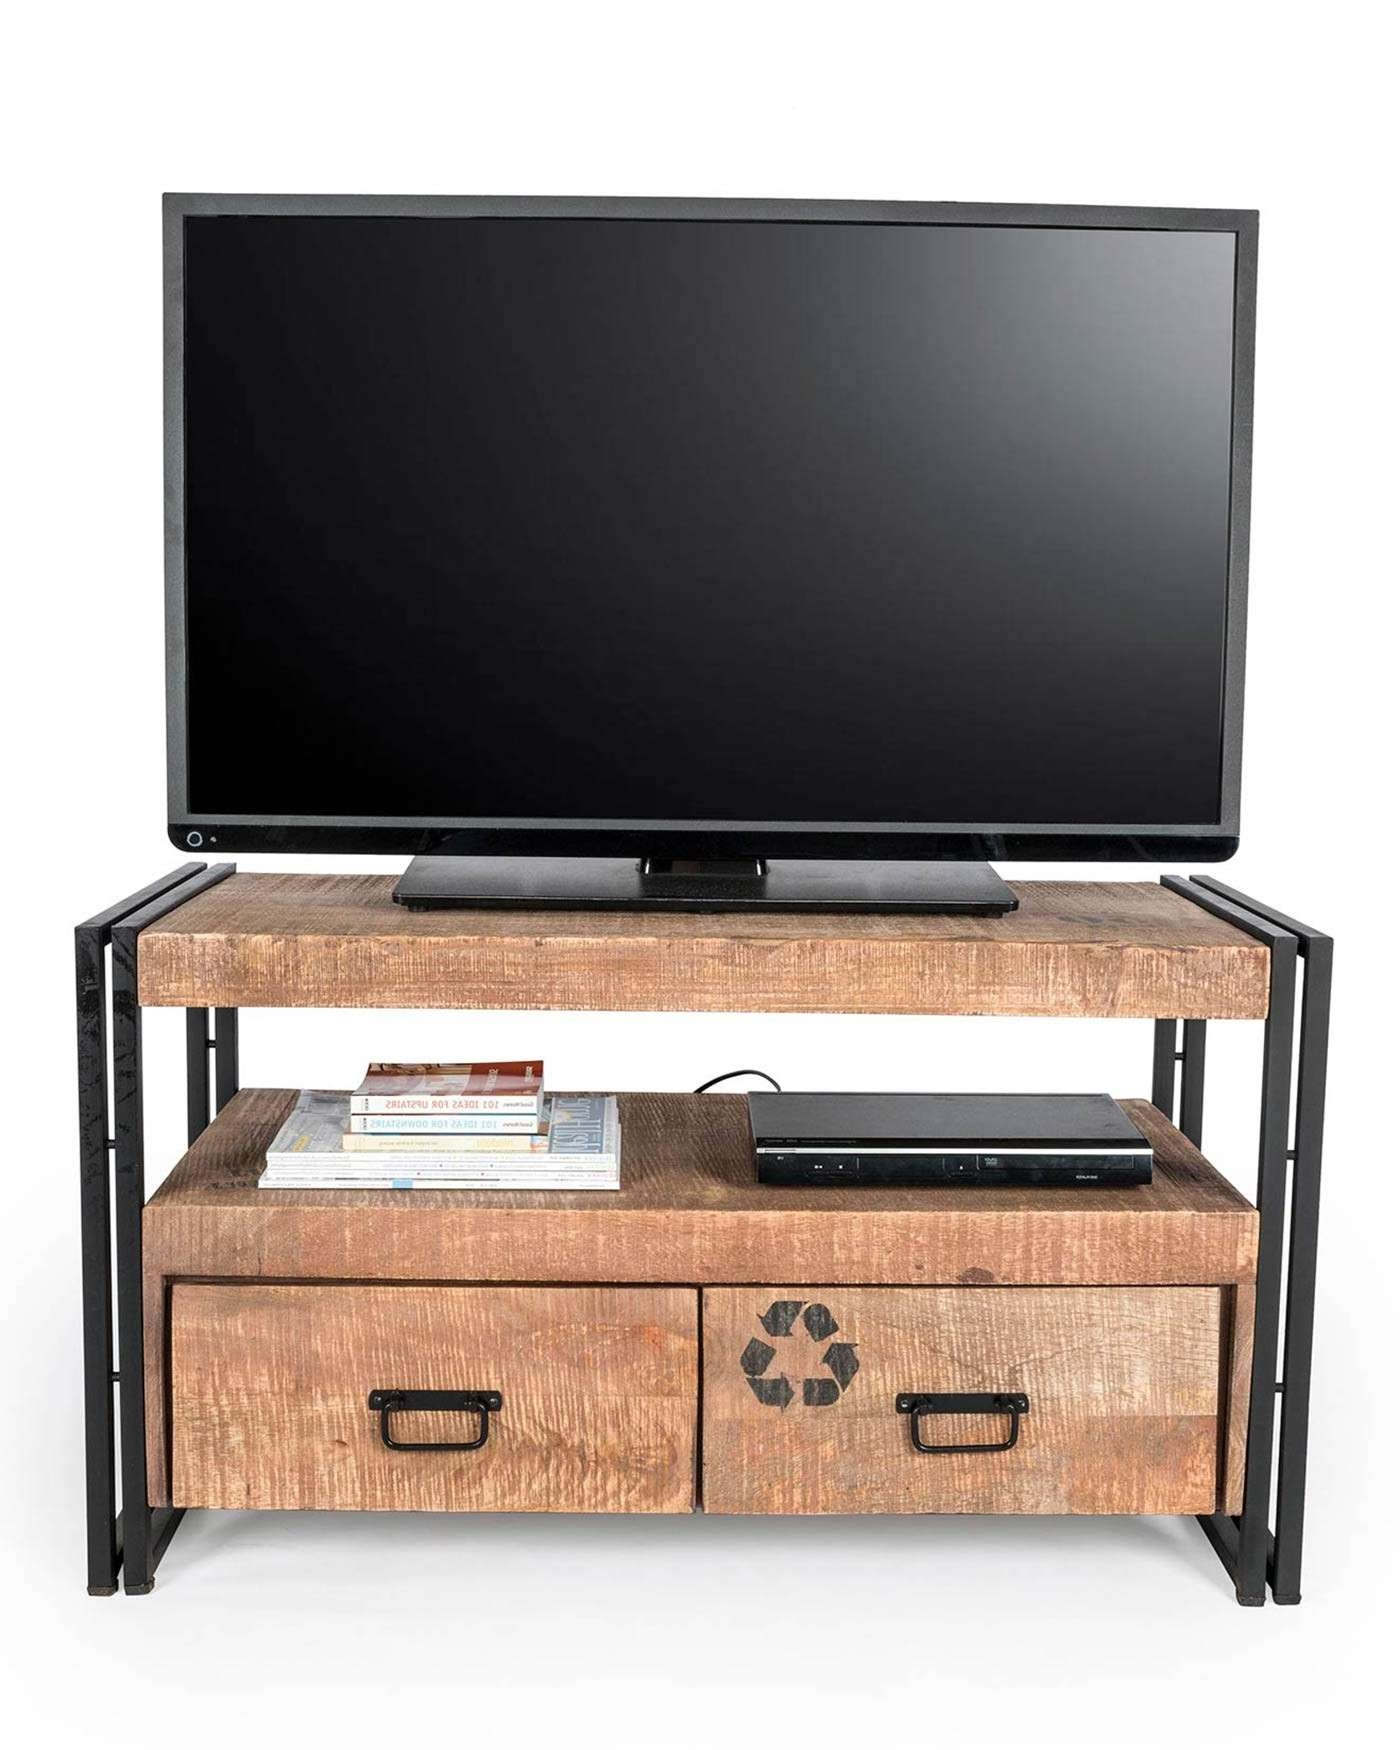 Reclaimed Wood Tv Stand Industrial Furniture Range – Homescapes For Industrial Tv Stands (View 11 of 15)